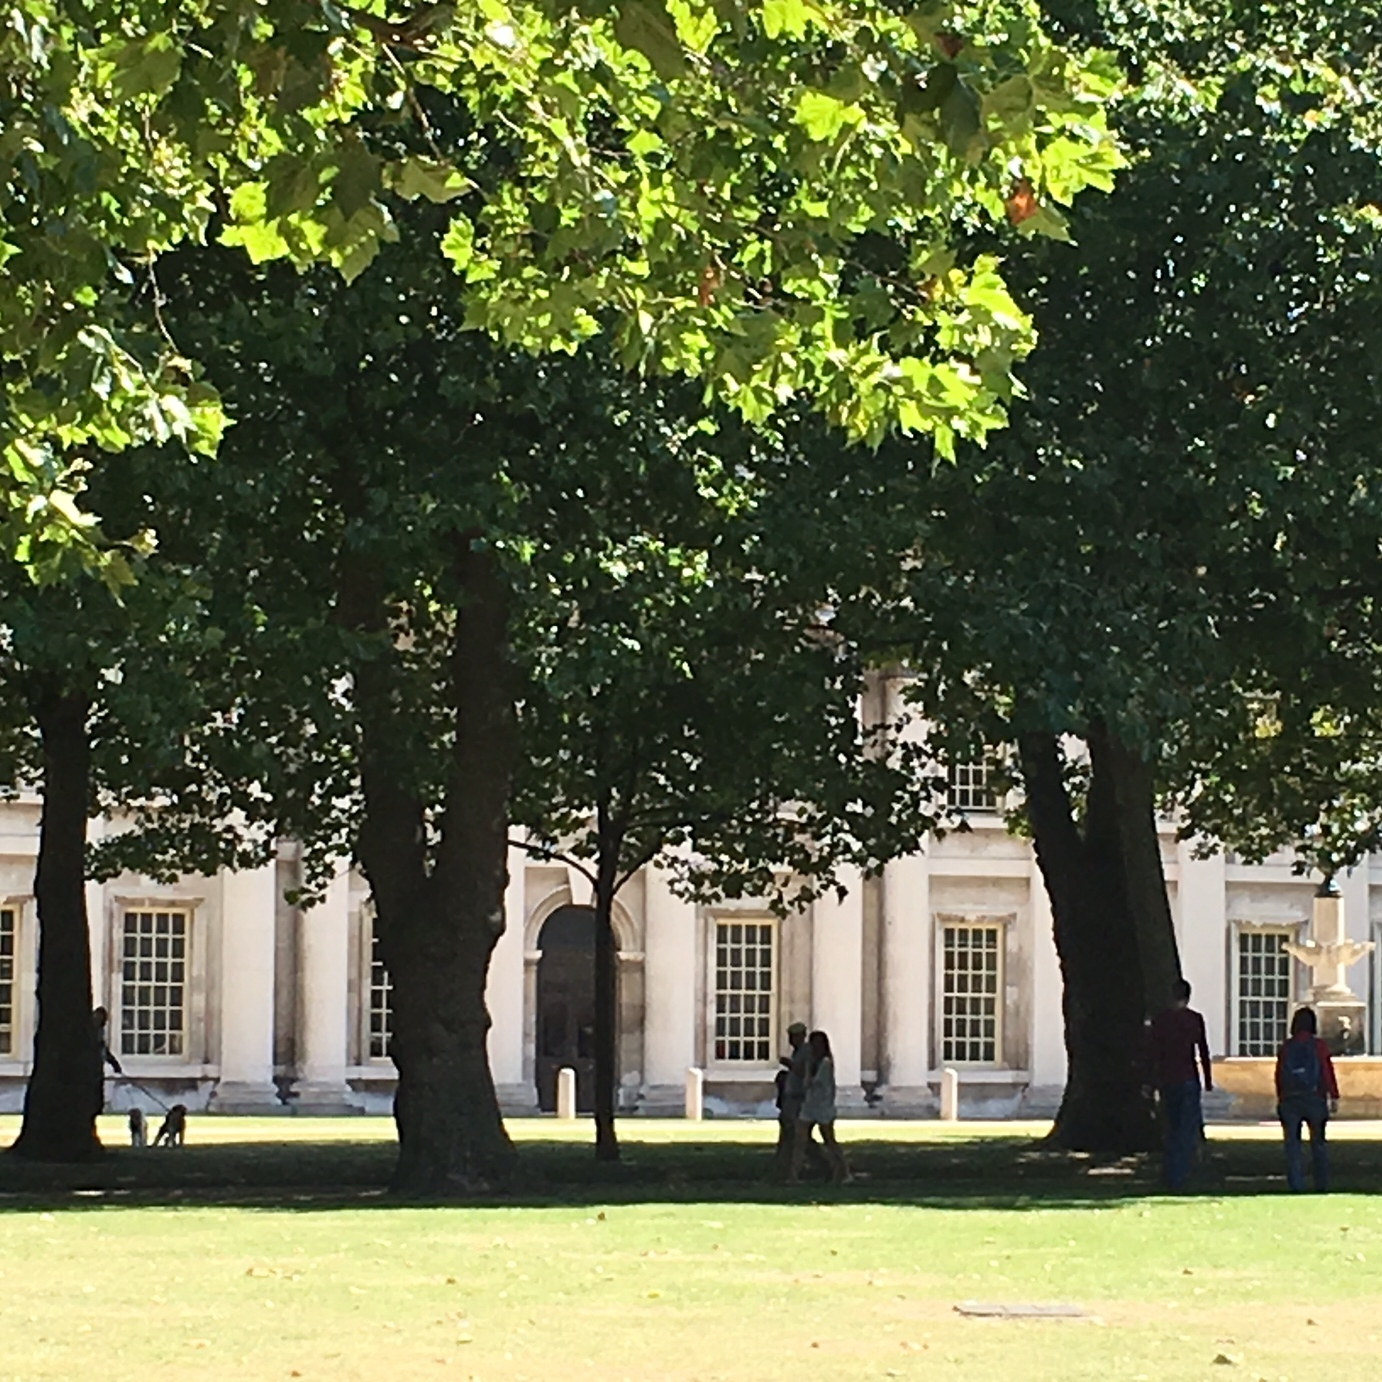 Royal Naval College, Greenwich by The Doubtful Traveller